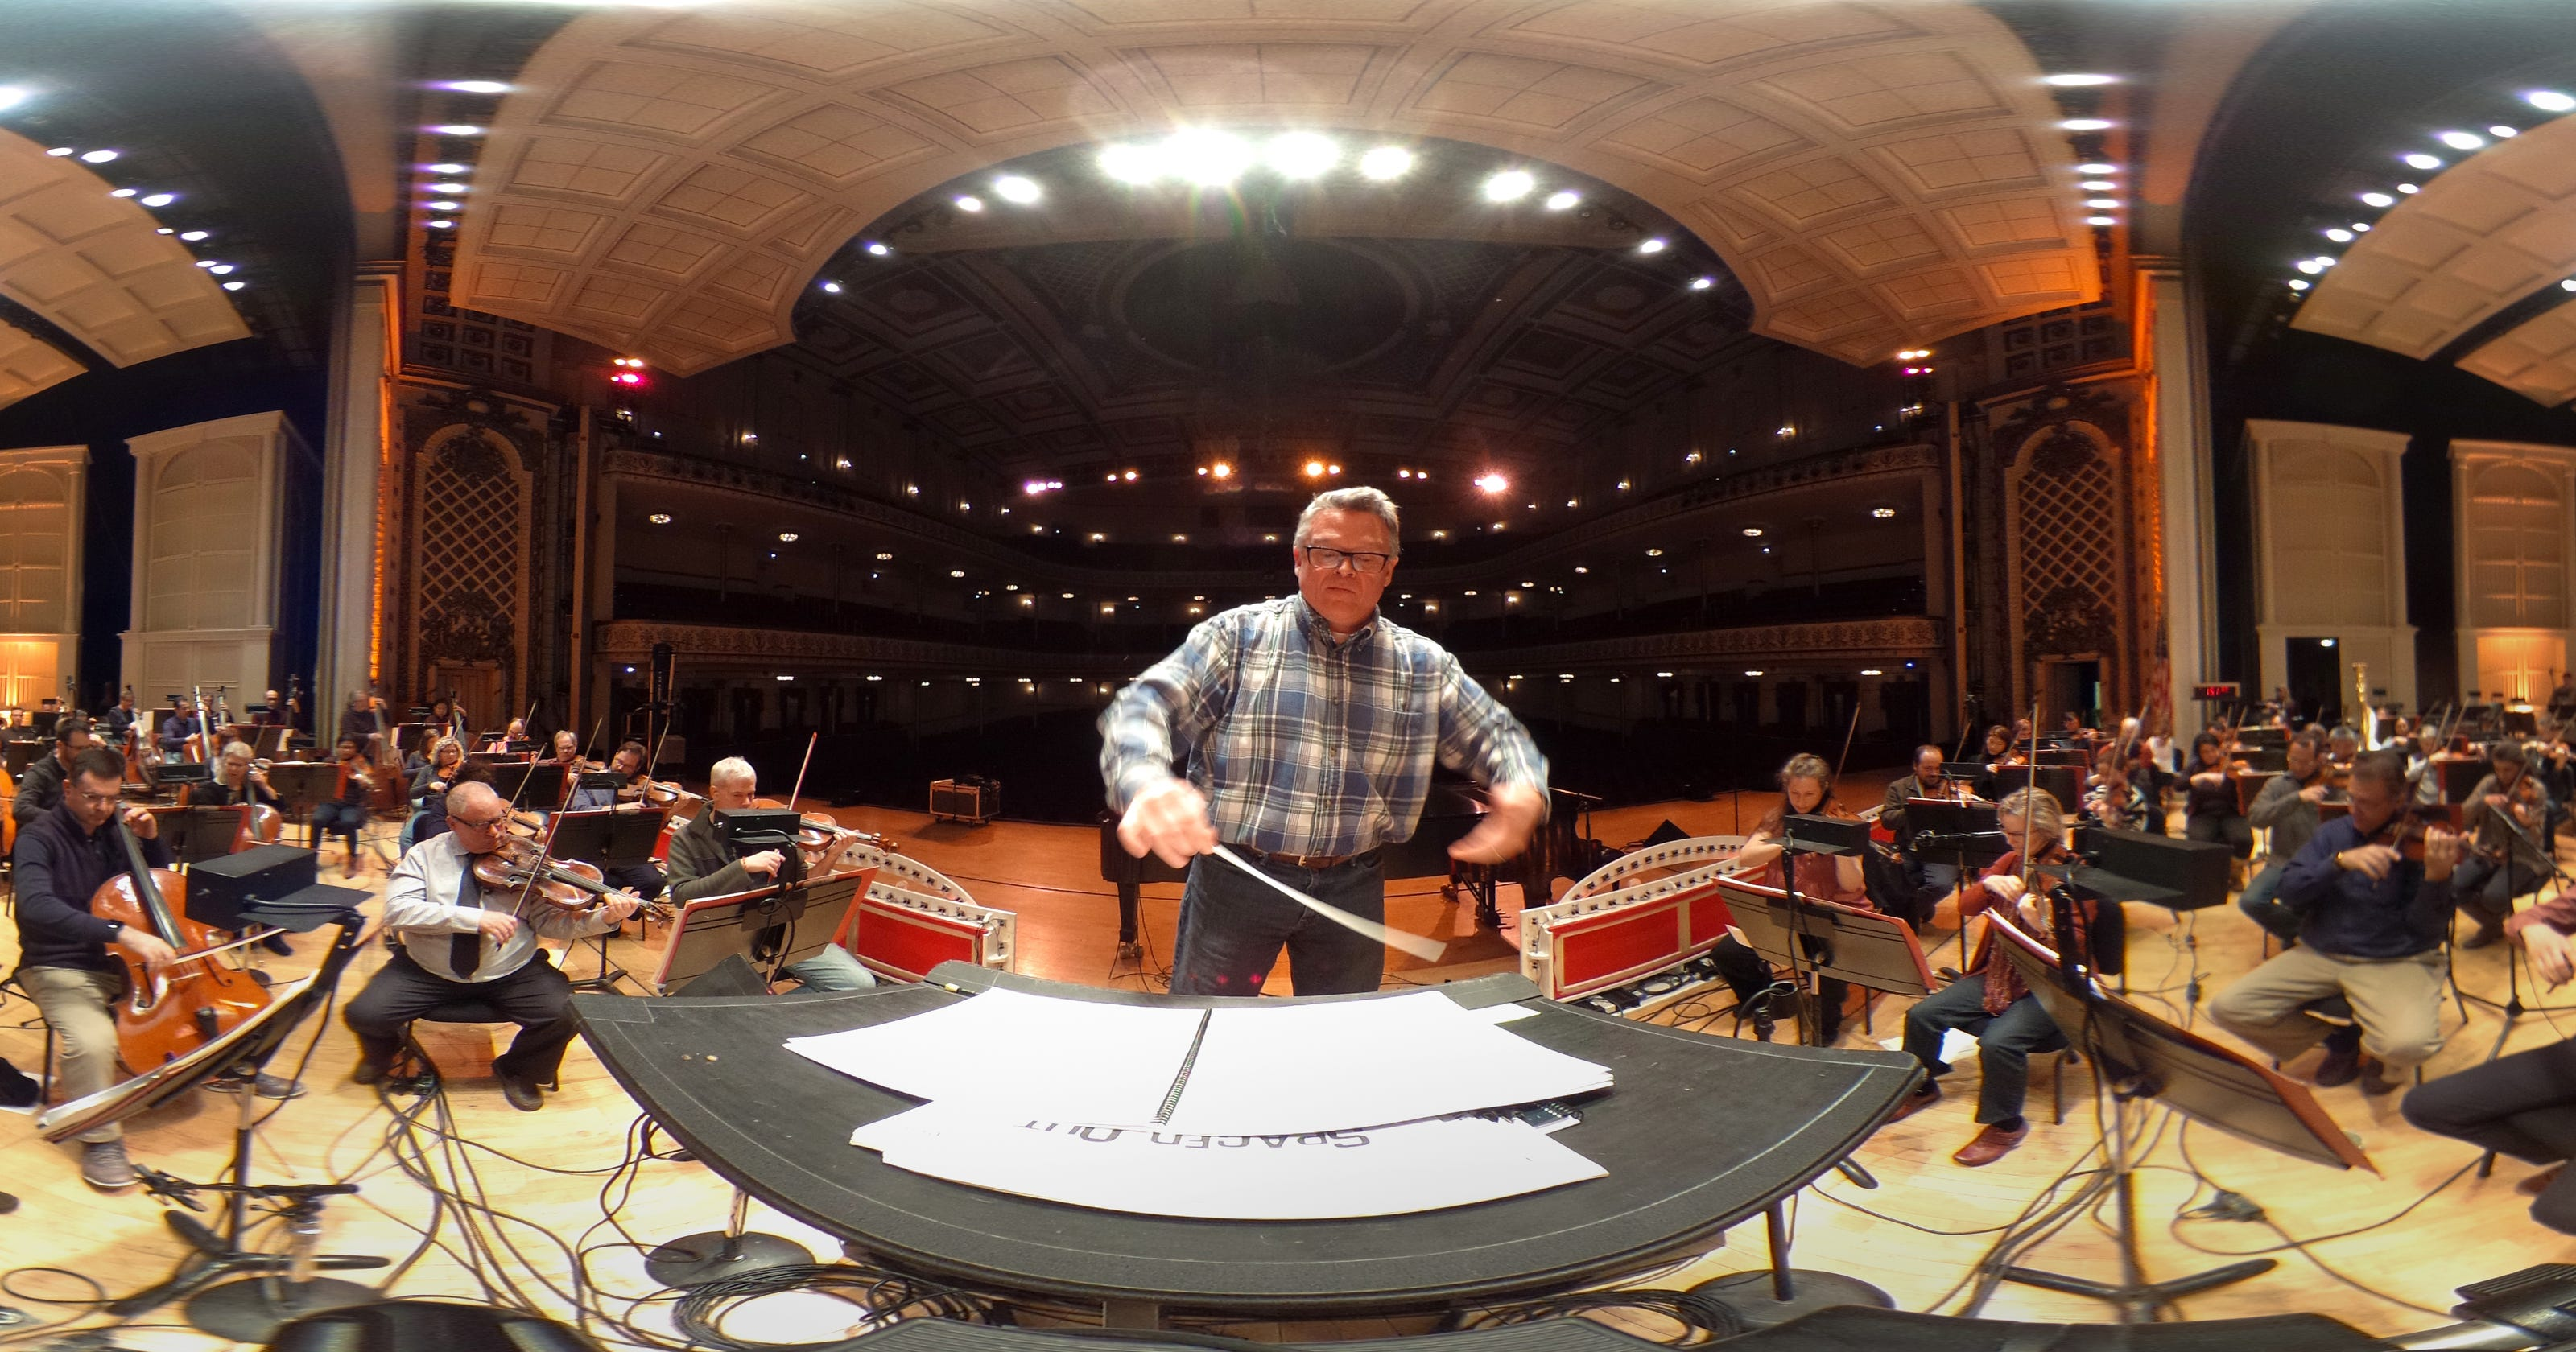 VIDEO: A 360-degree view of a Cincinnati Pops Orchestra rehearsal